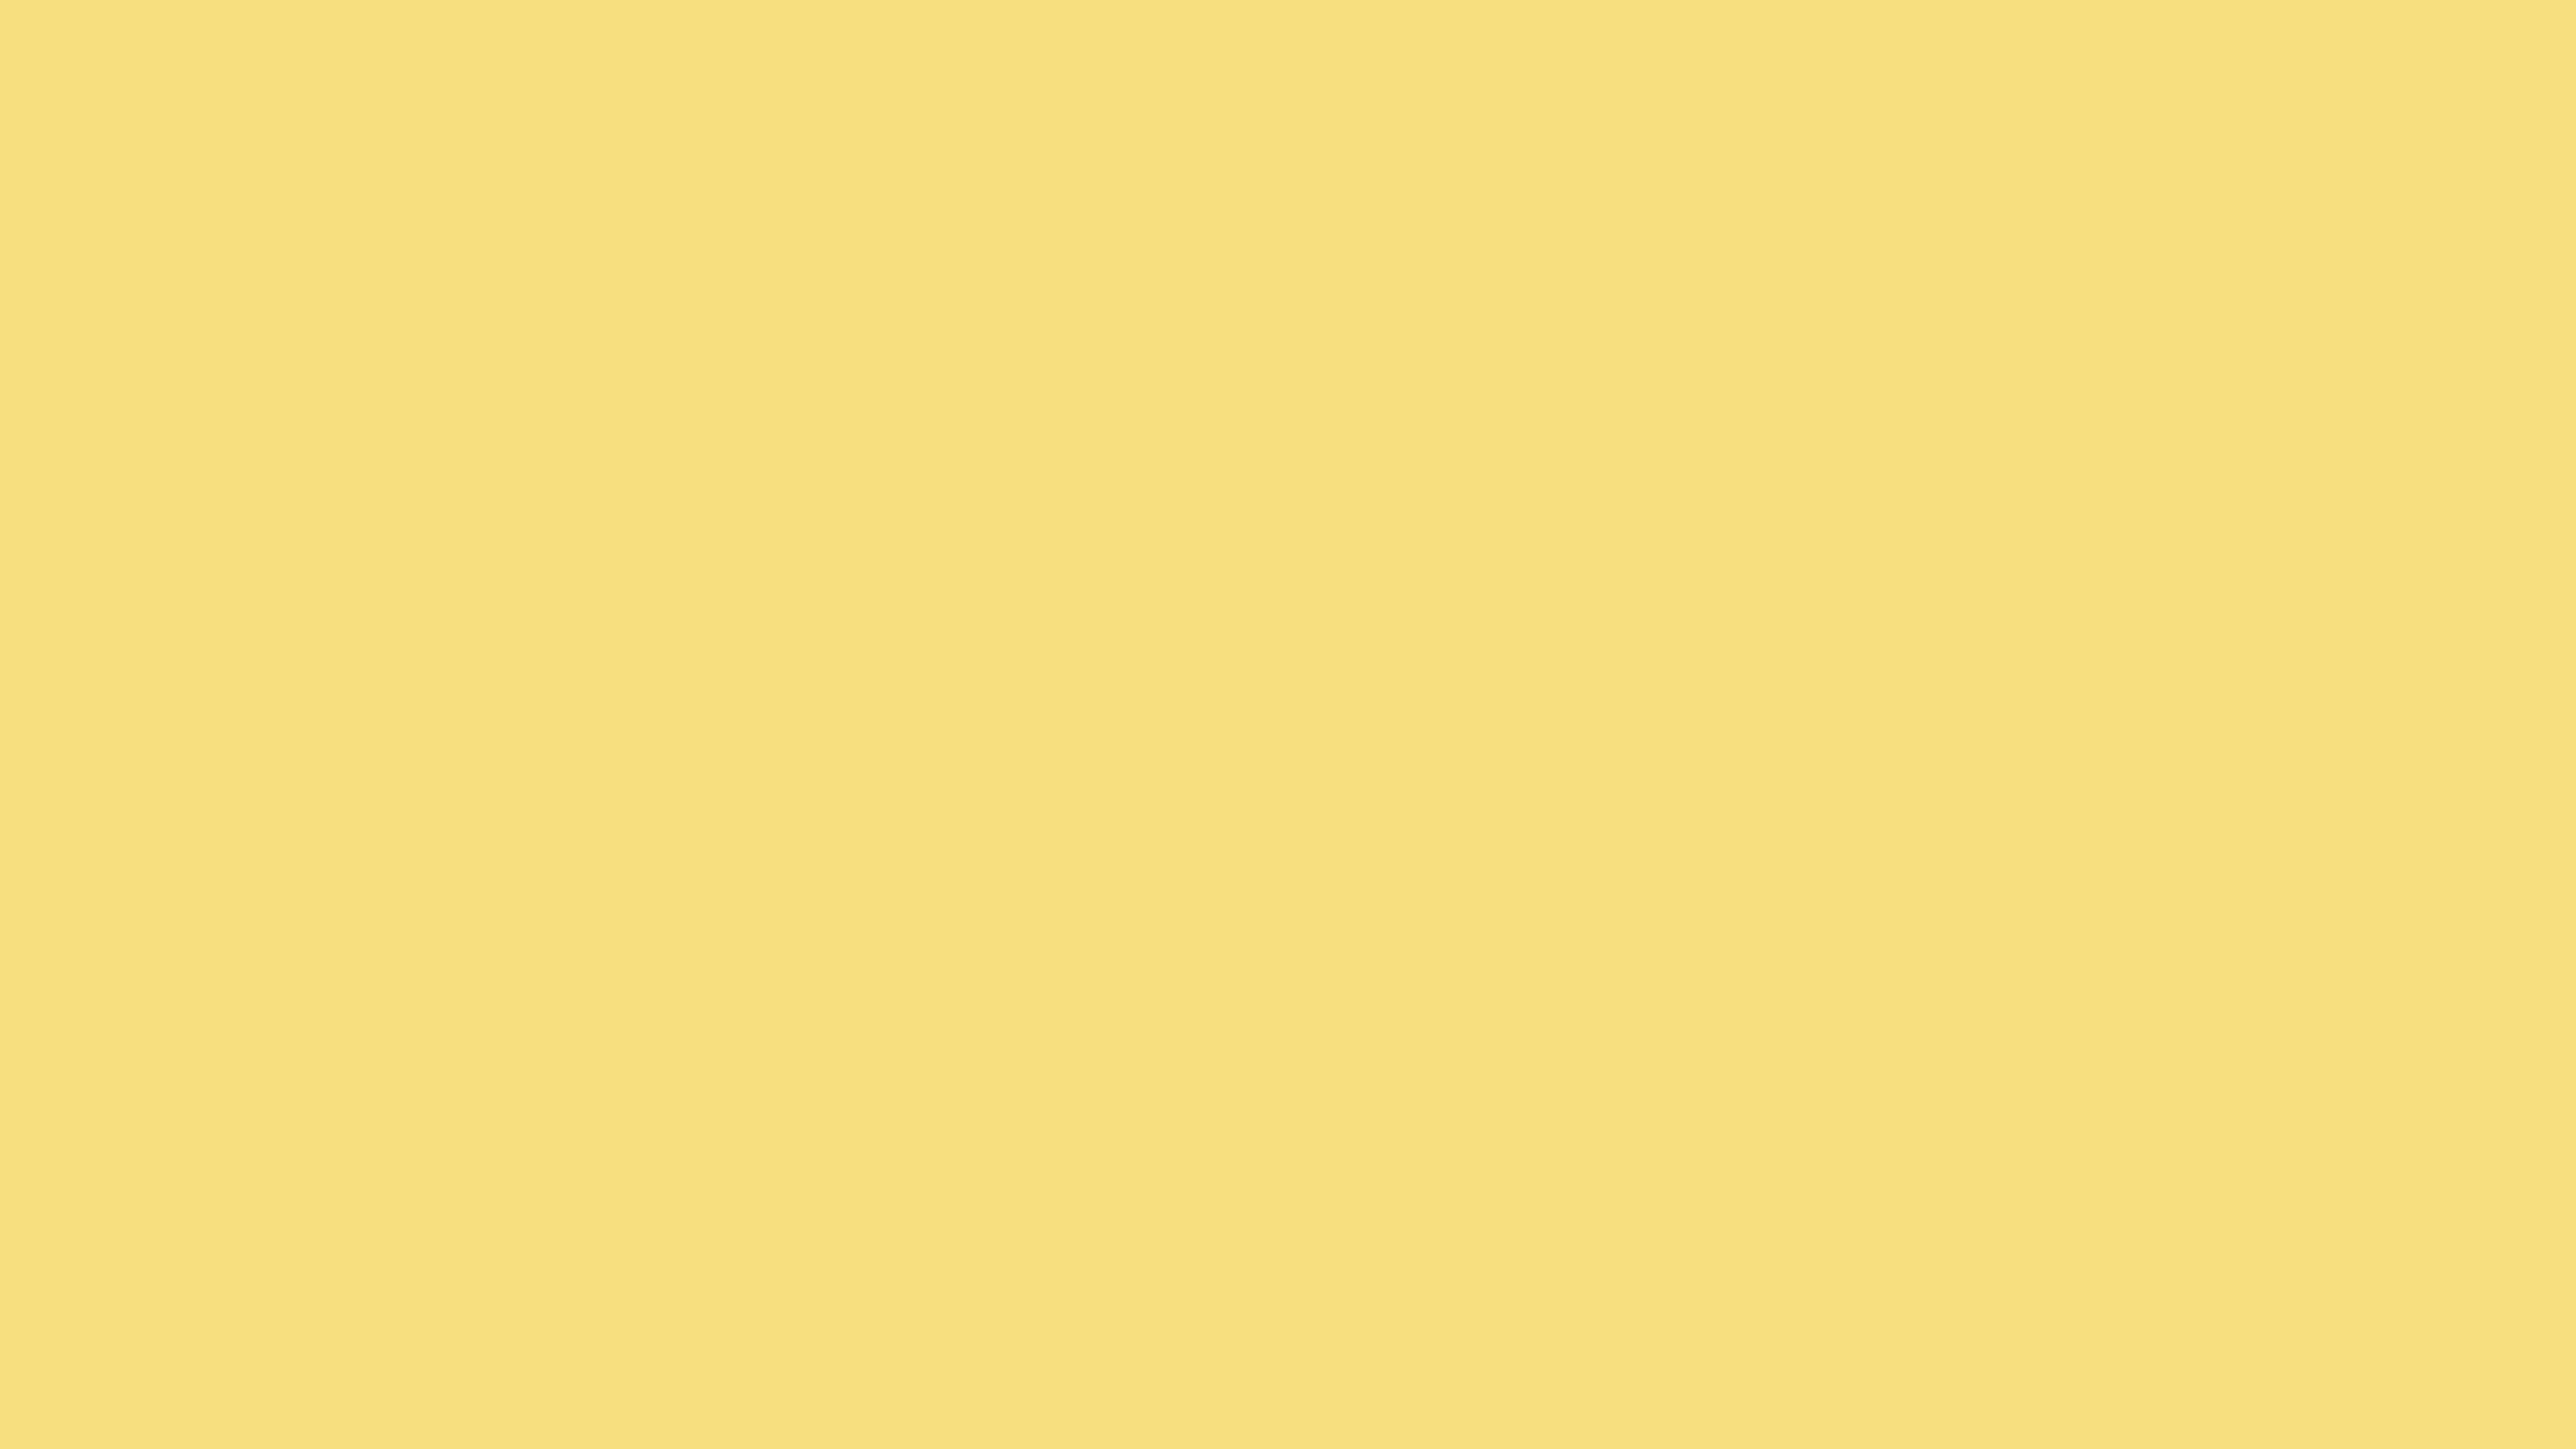 3840x2160 Mellow Yellow Solid Color Background